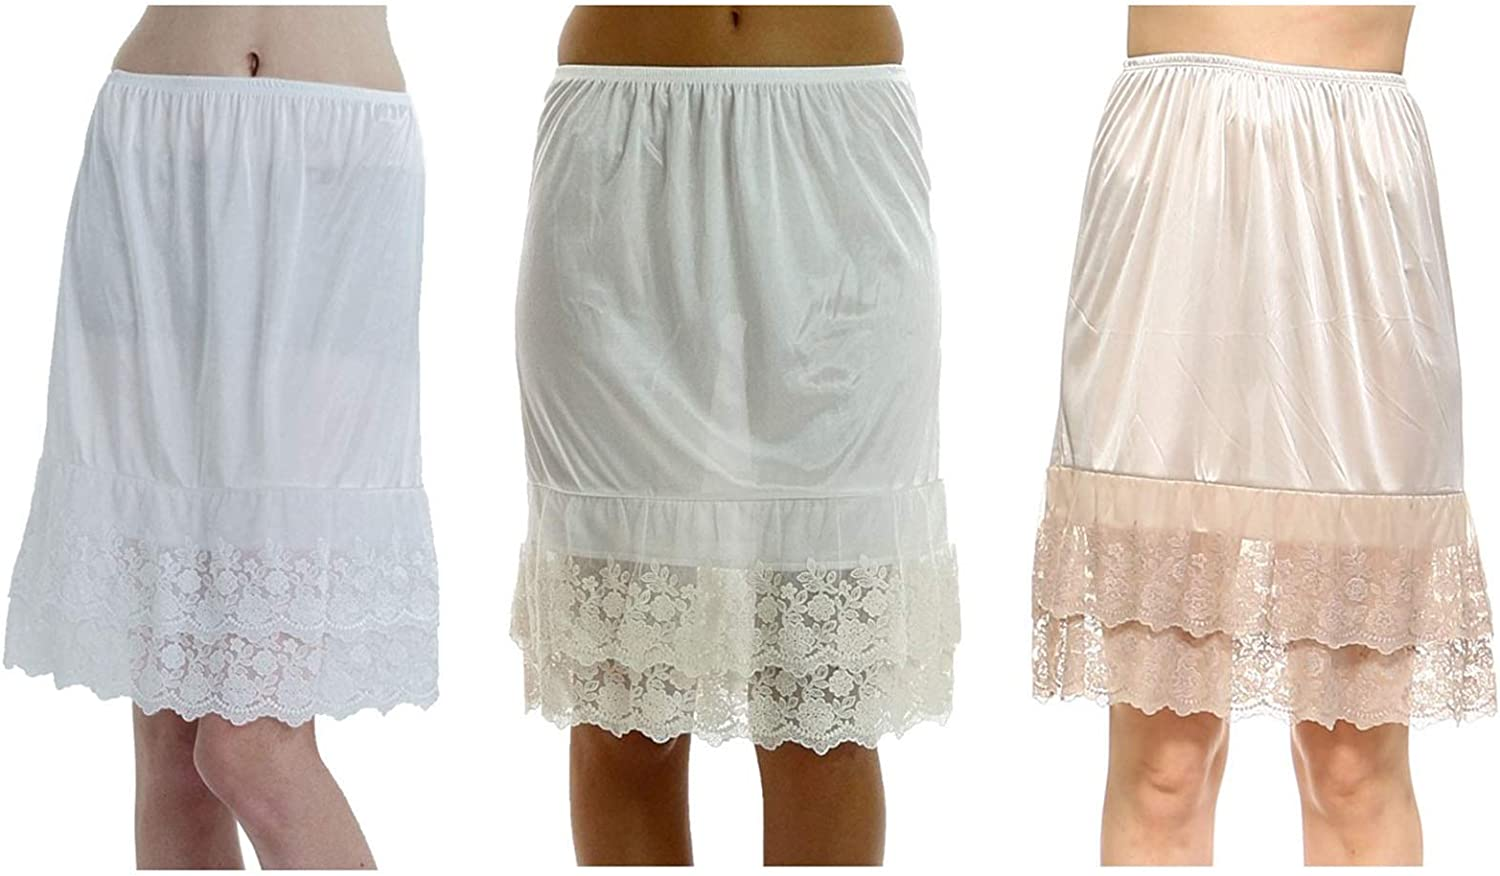 Melody Women's Double Layered Lace Satin Skirt Extender Half Slip 3 Pieces Pack Set